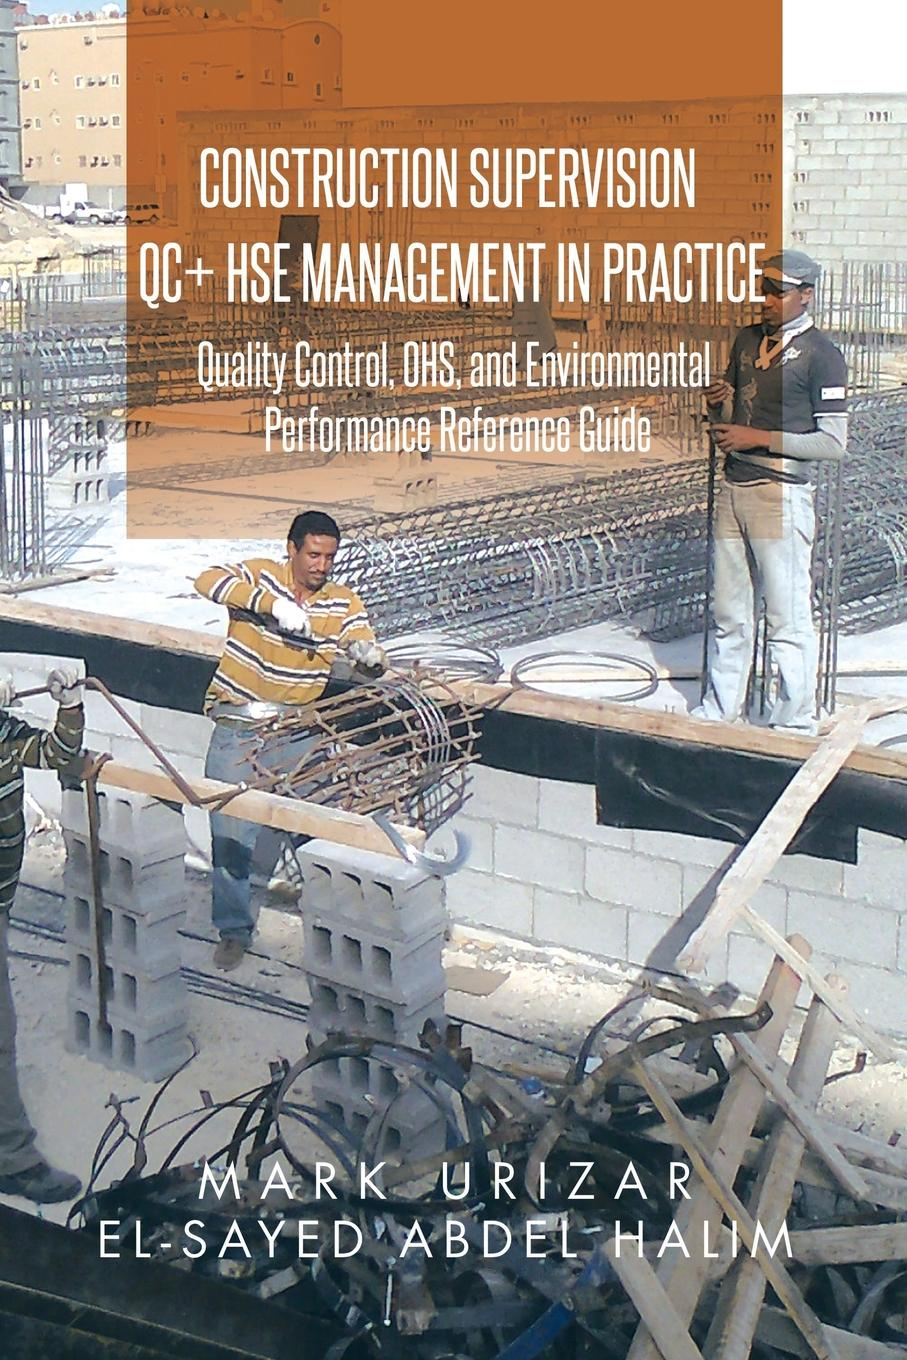 цены Mark Urizar, El-Sayed Abdel Halim Construction Supervision QC + HSE Management in Practice. Quality Control, OHS, and Environmental Performance Reference Guide